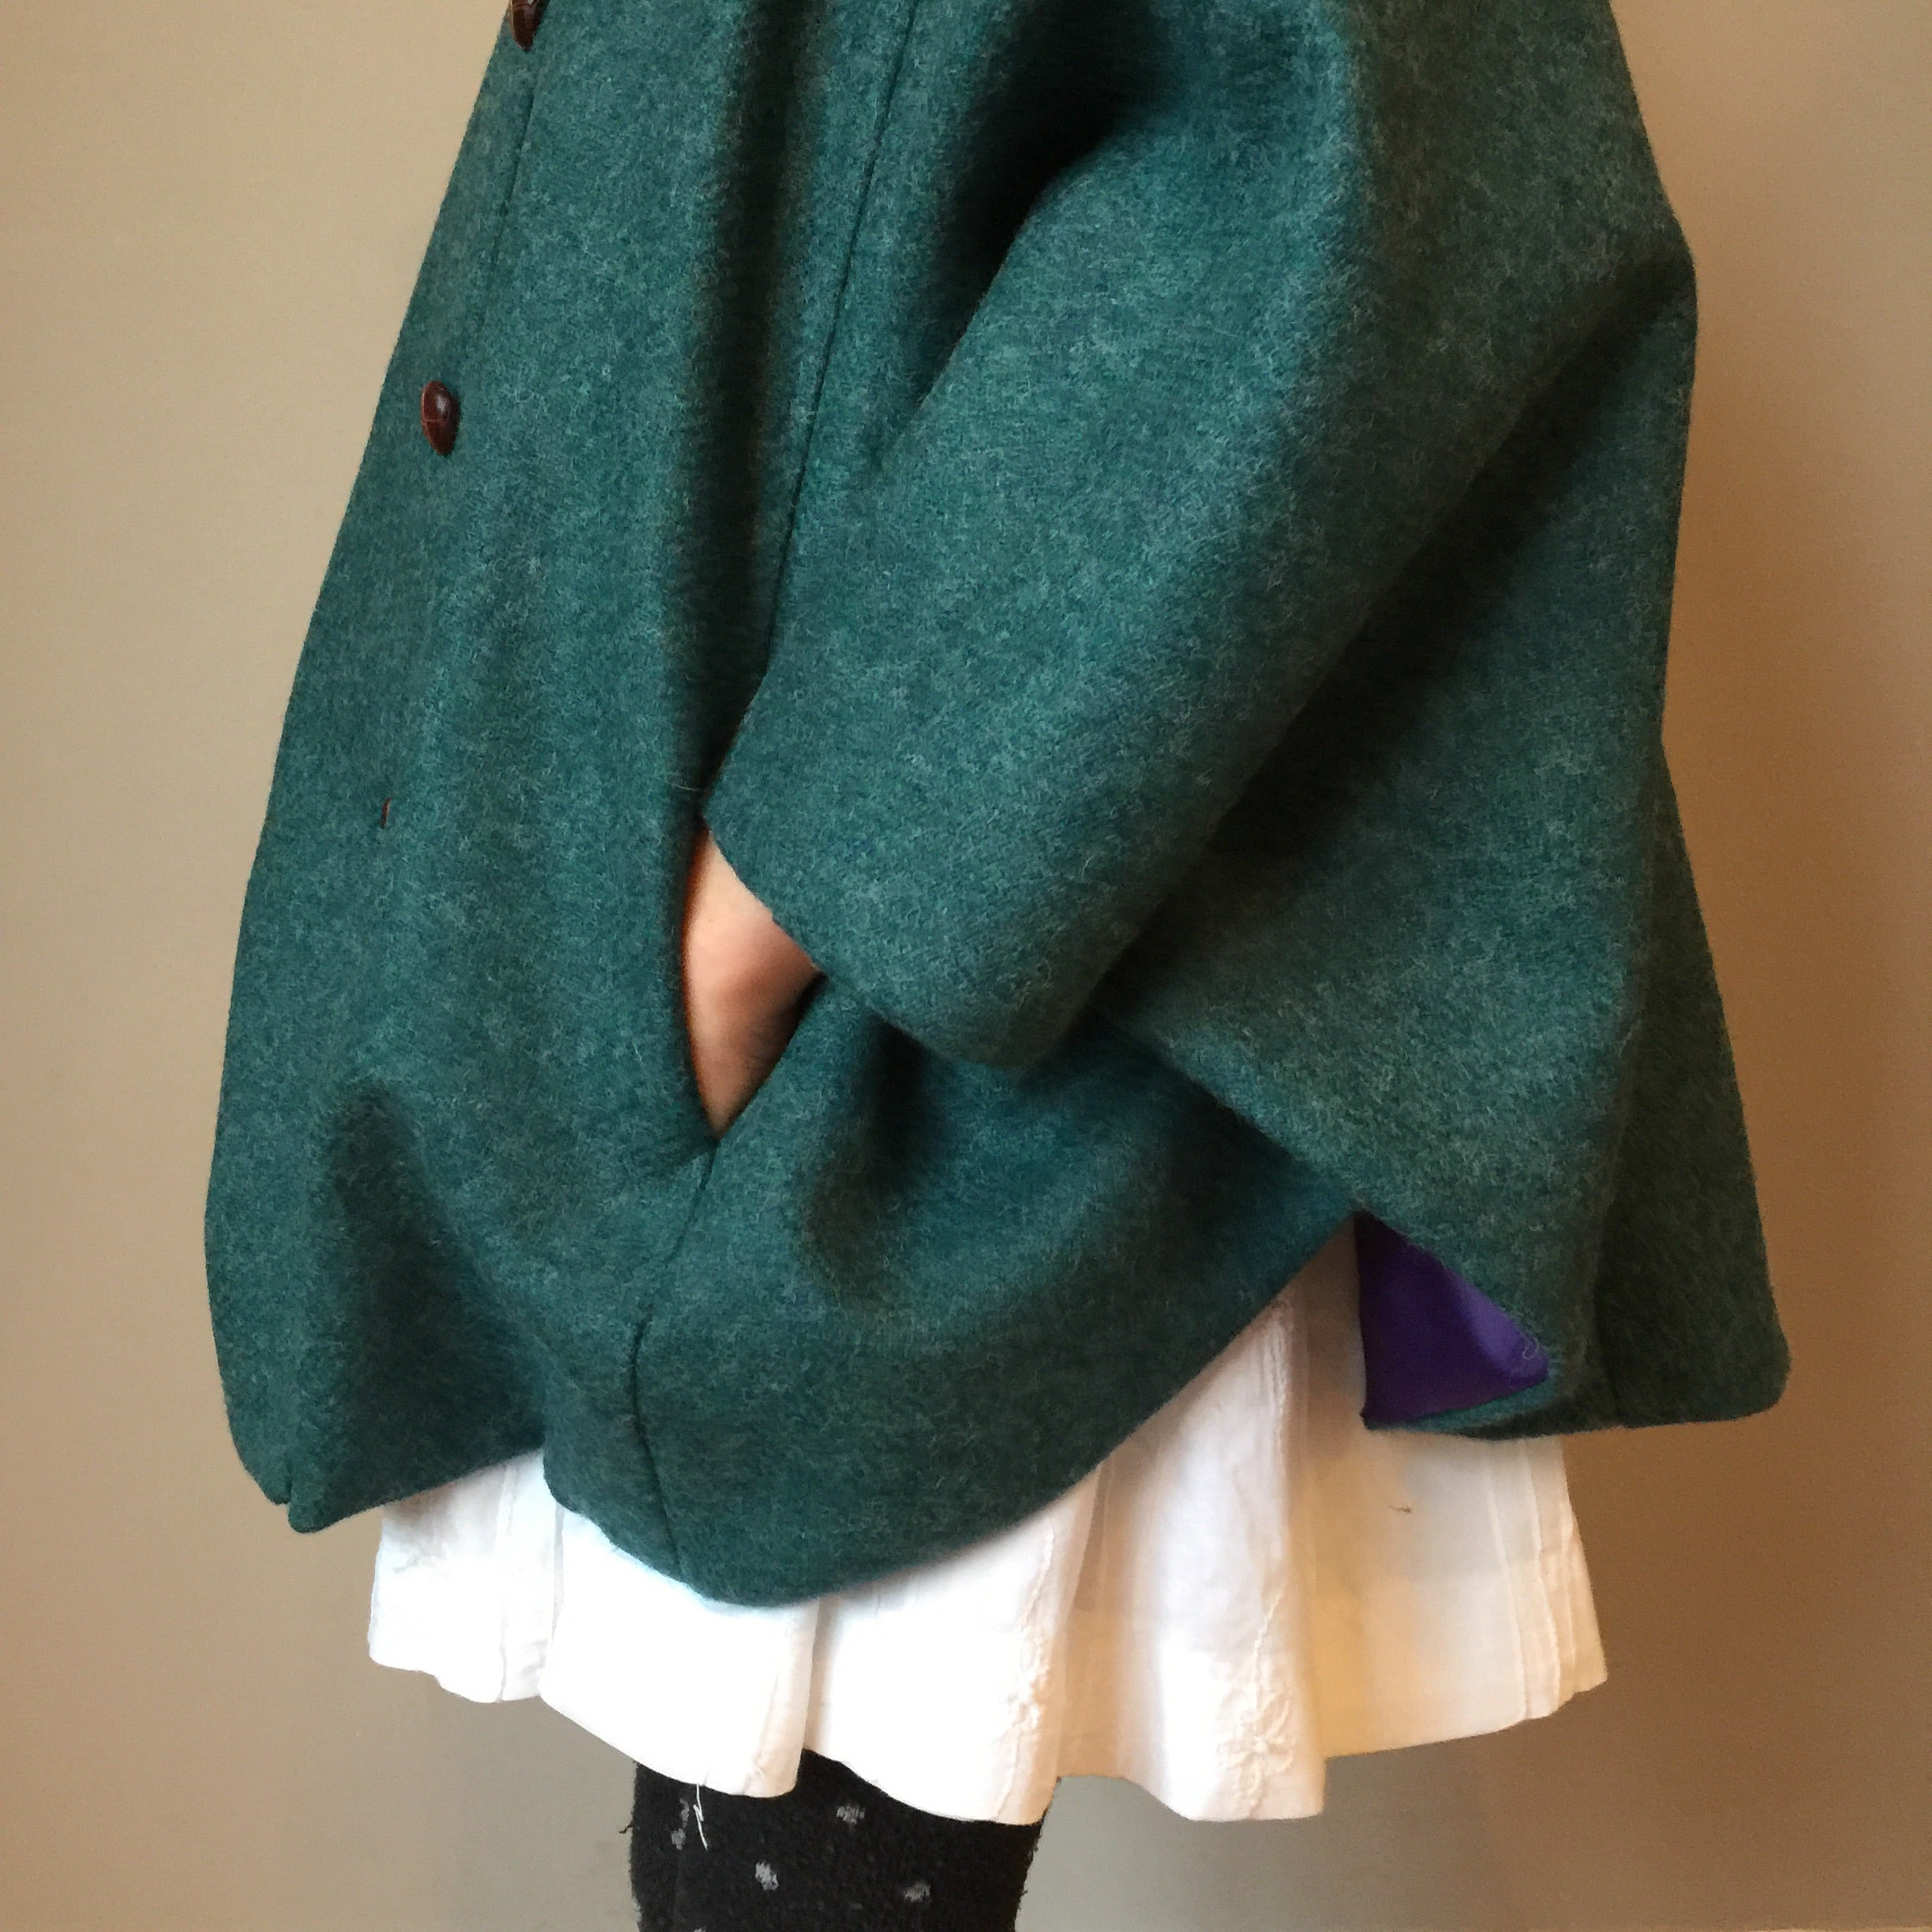 'Iris' Girls teal 100% Shetland Wool hooded cape  - Hand Made in England